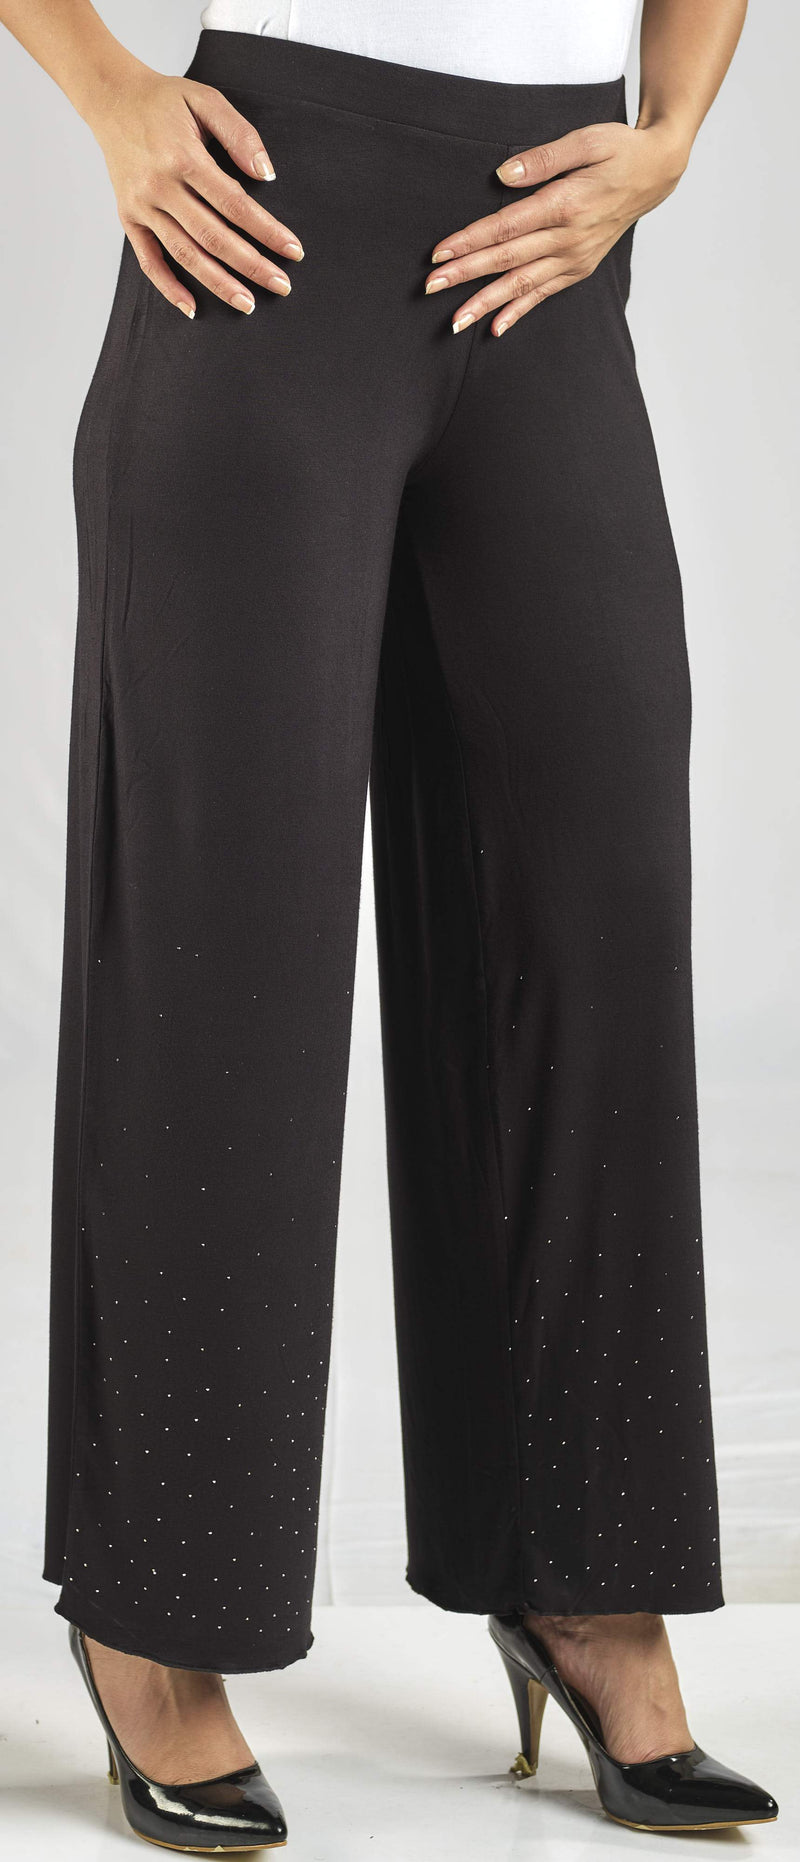 100% NATURAL MODAL PANTS WITH SMALL TONE TO TONE CRYSTAL EMBELLISHMENT AND AN ELASTIC WAIST FOR EXTRA COMFORT